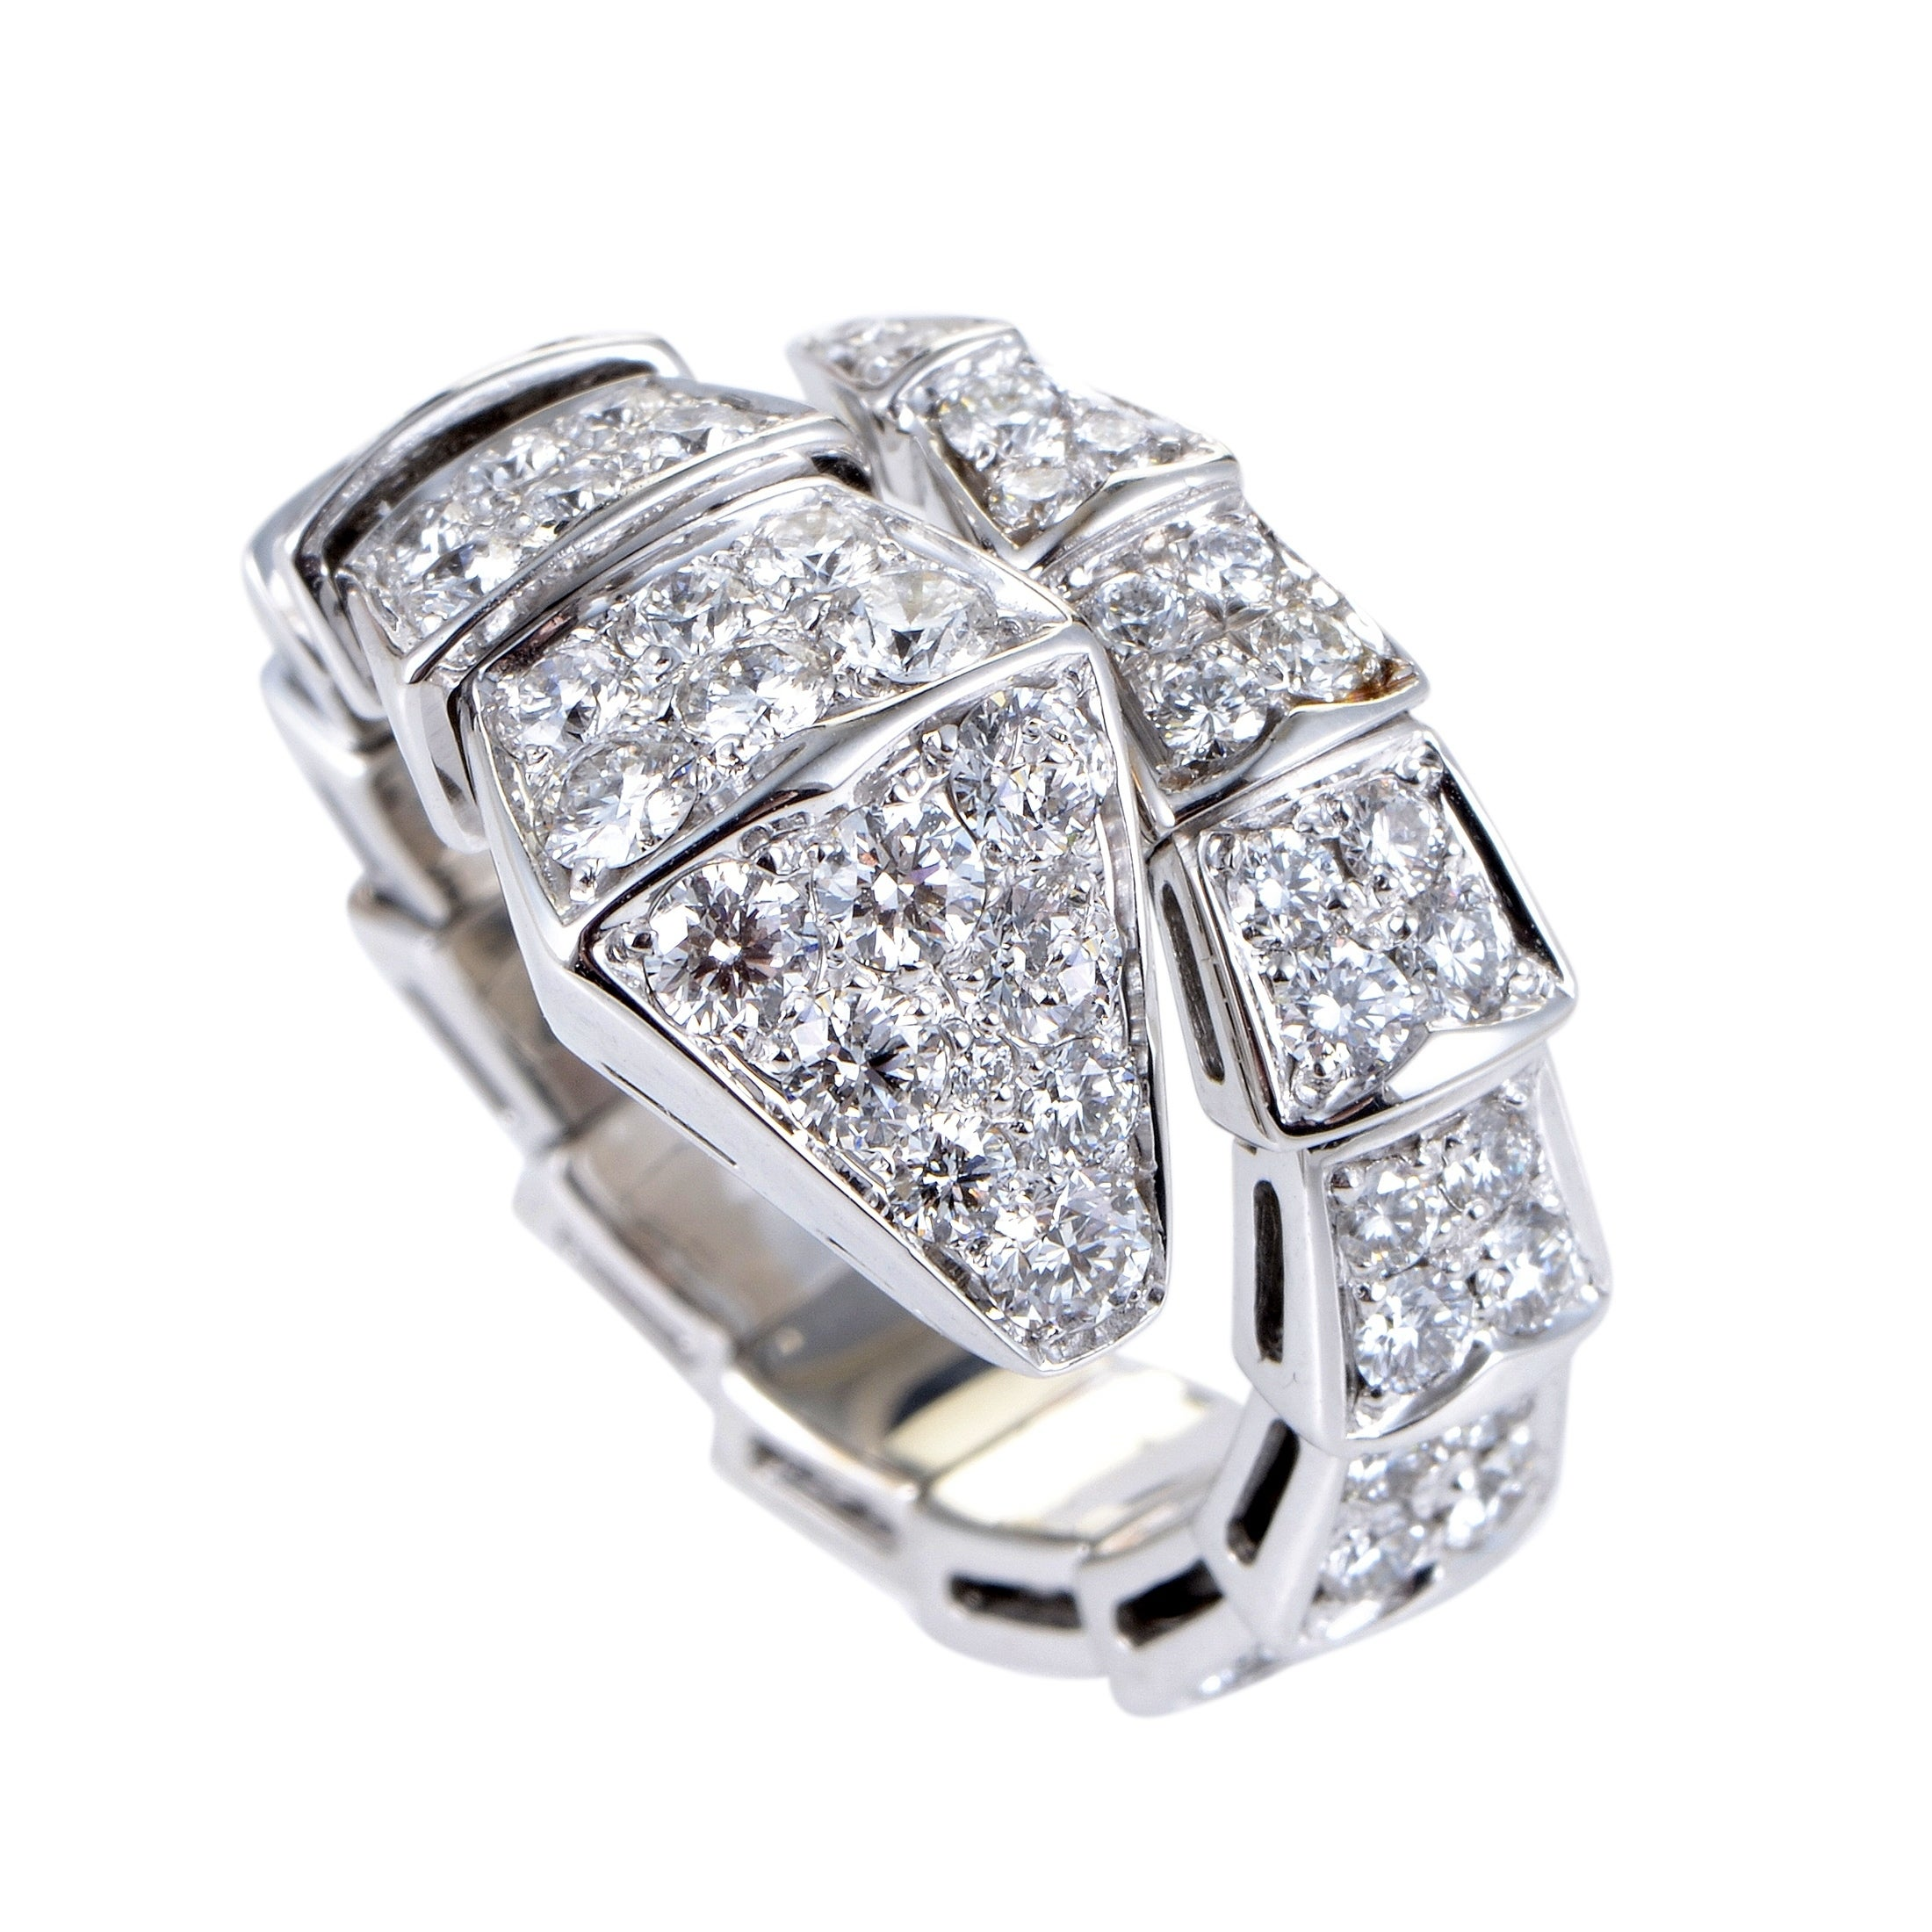 ef7a7a6db4a5b Shop Bvlgari Serpenti Womens White Gold Full Diamond Pave Snake Ring Size S  AN855116S - Ships To Canada - Overstock - 19675919